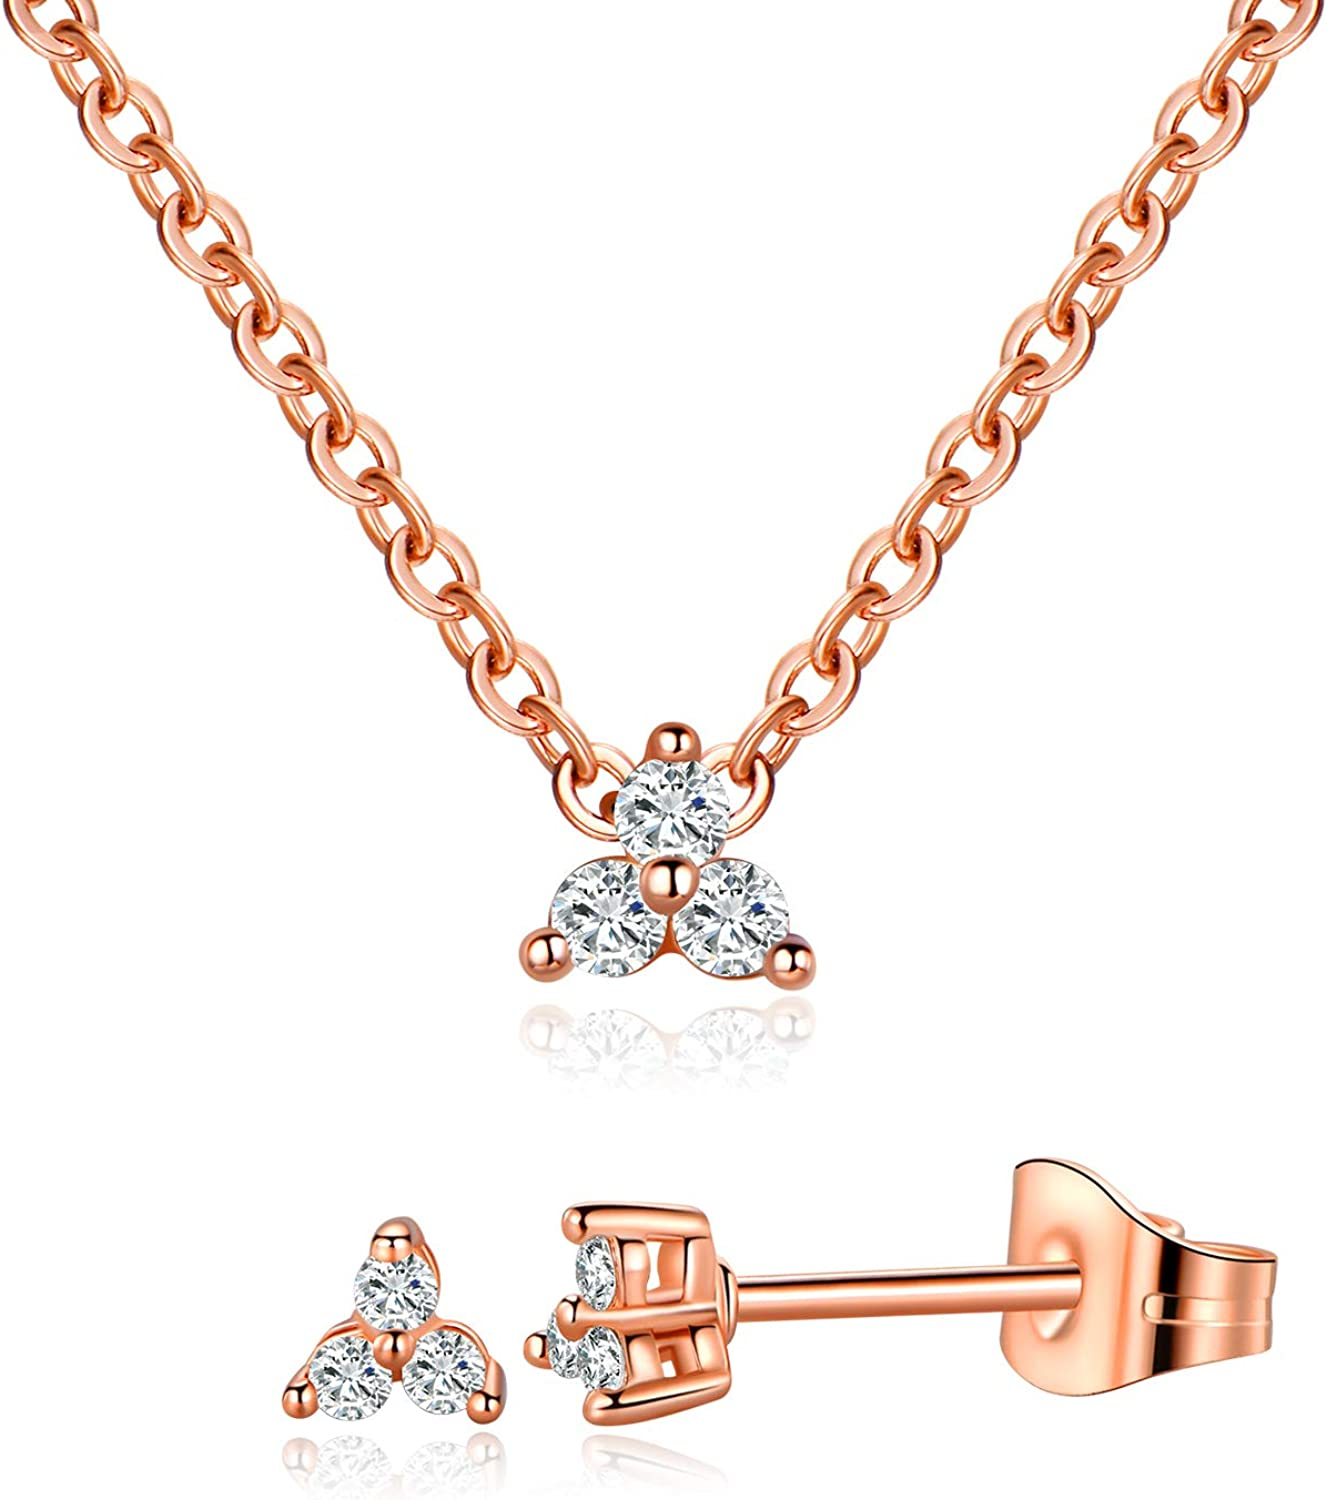 MDFUN Classic Halo Necklace and Stud Earring for Women and Girls, 18K Gold Plated Sparkle Cubic Zirconia Round Cut Clover Earring & Pendant Jewelry Set